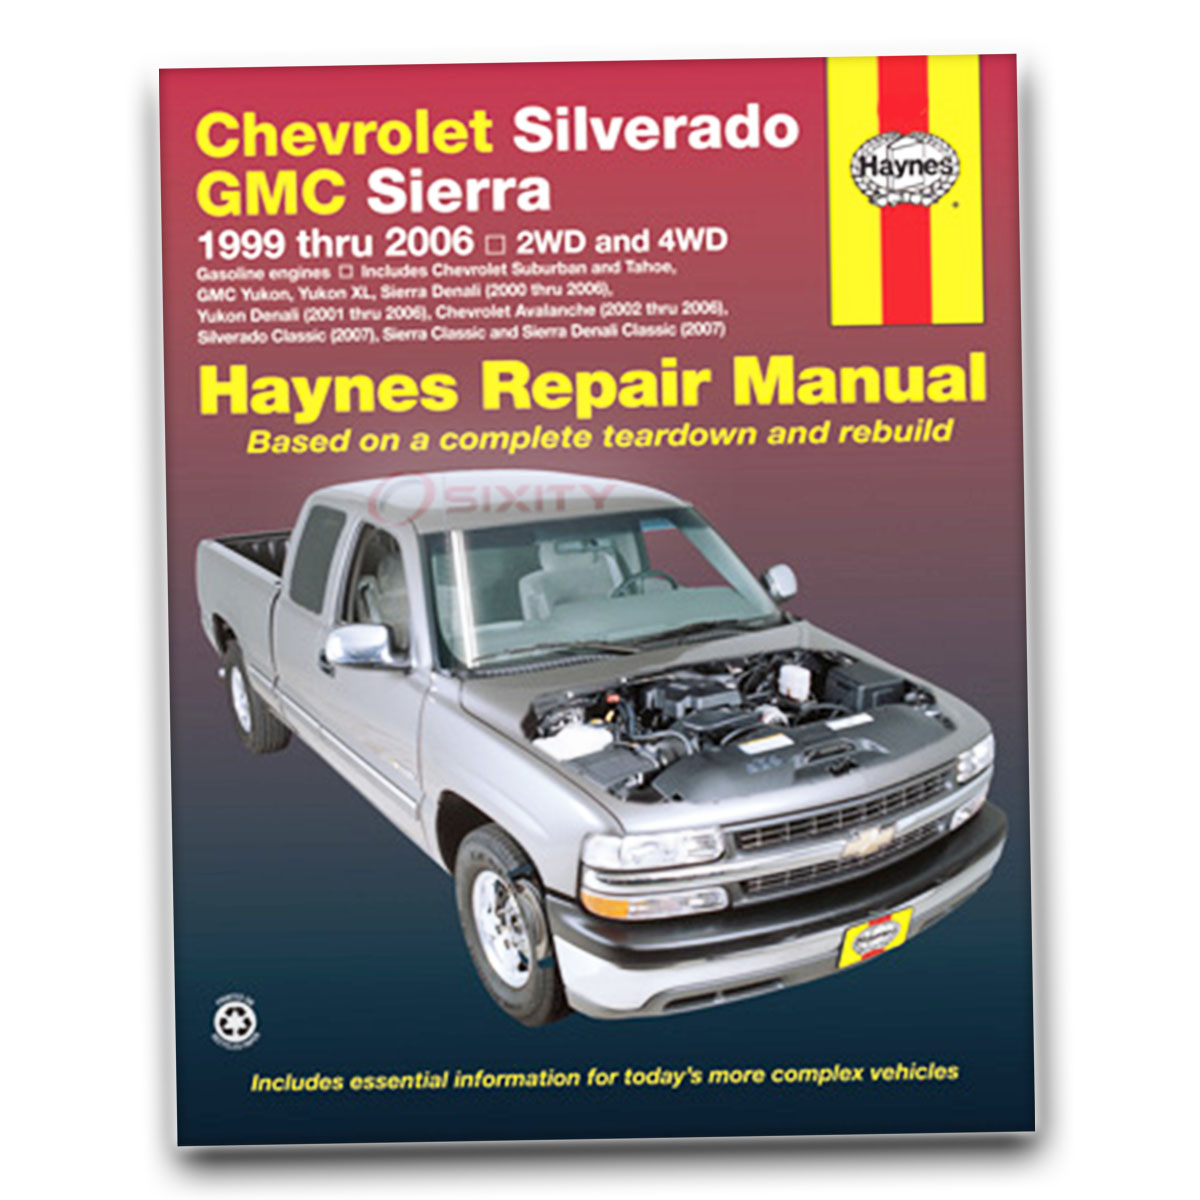 gmc yukon haynes repair manual slt denali sle shop service garage rh ebay com 2005 GMC Yukon 2000 gmc yukon slt owners manual